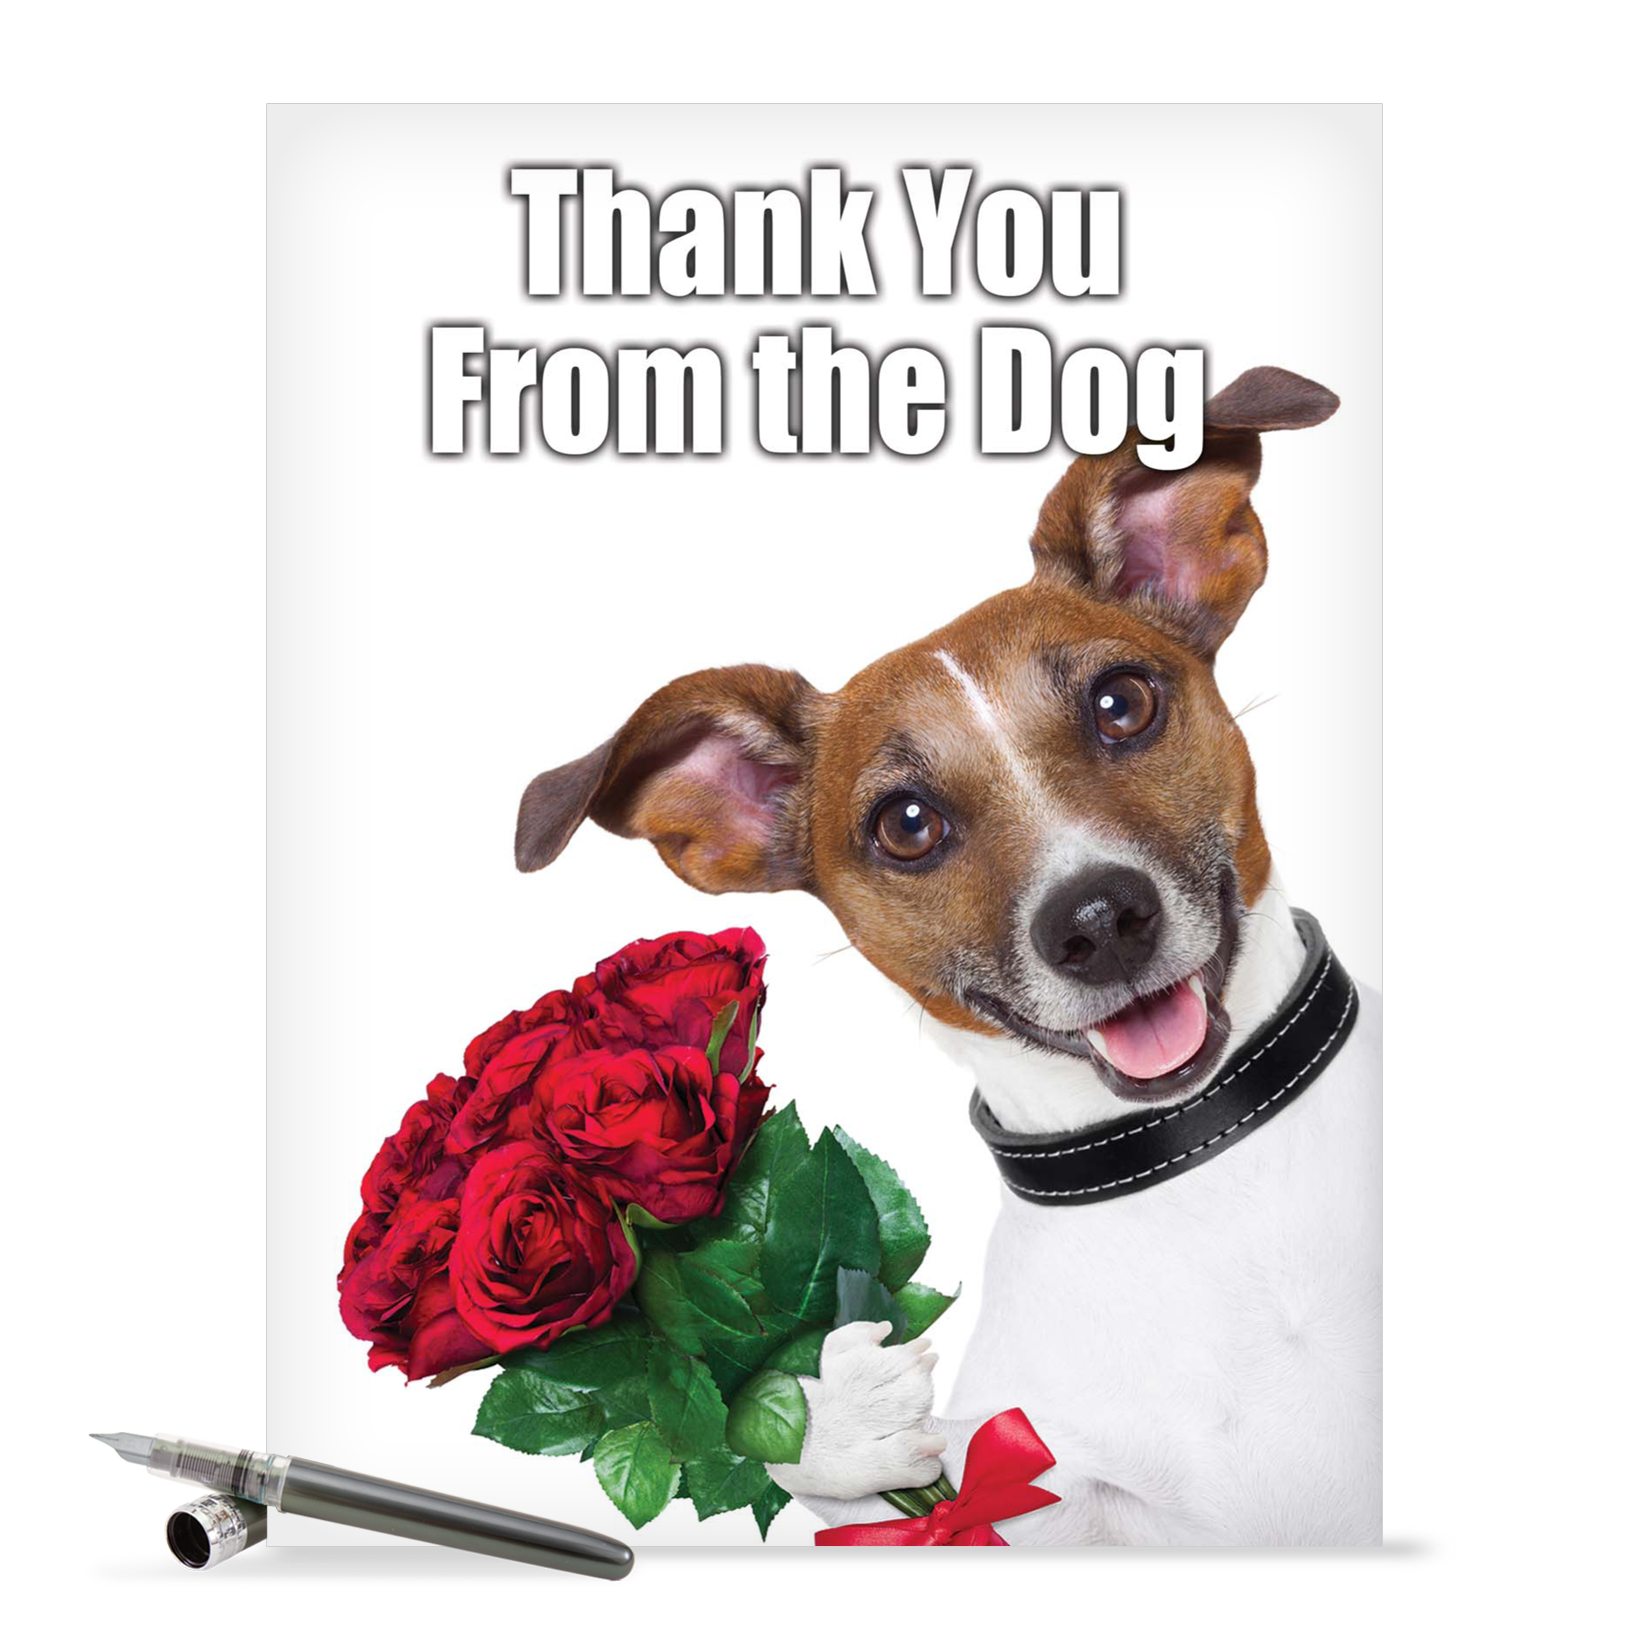 "J3614 Jumbo Hilarious Thank You Greeting Card: 'Thank You from the Dog Thank You' with Envelope (Jumbo Size: 8.5"" x 11"")"